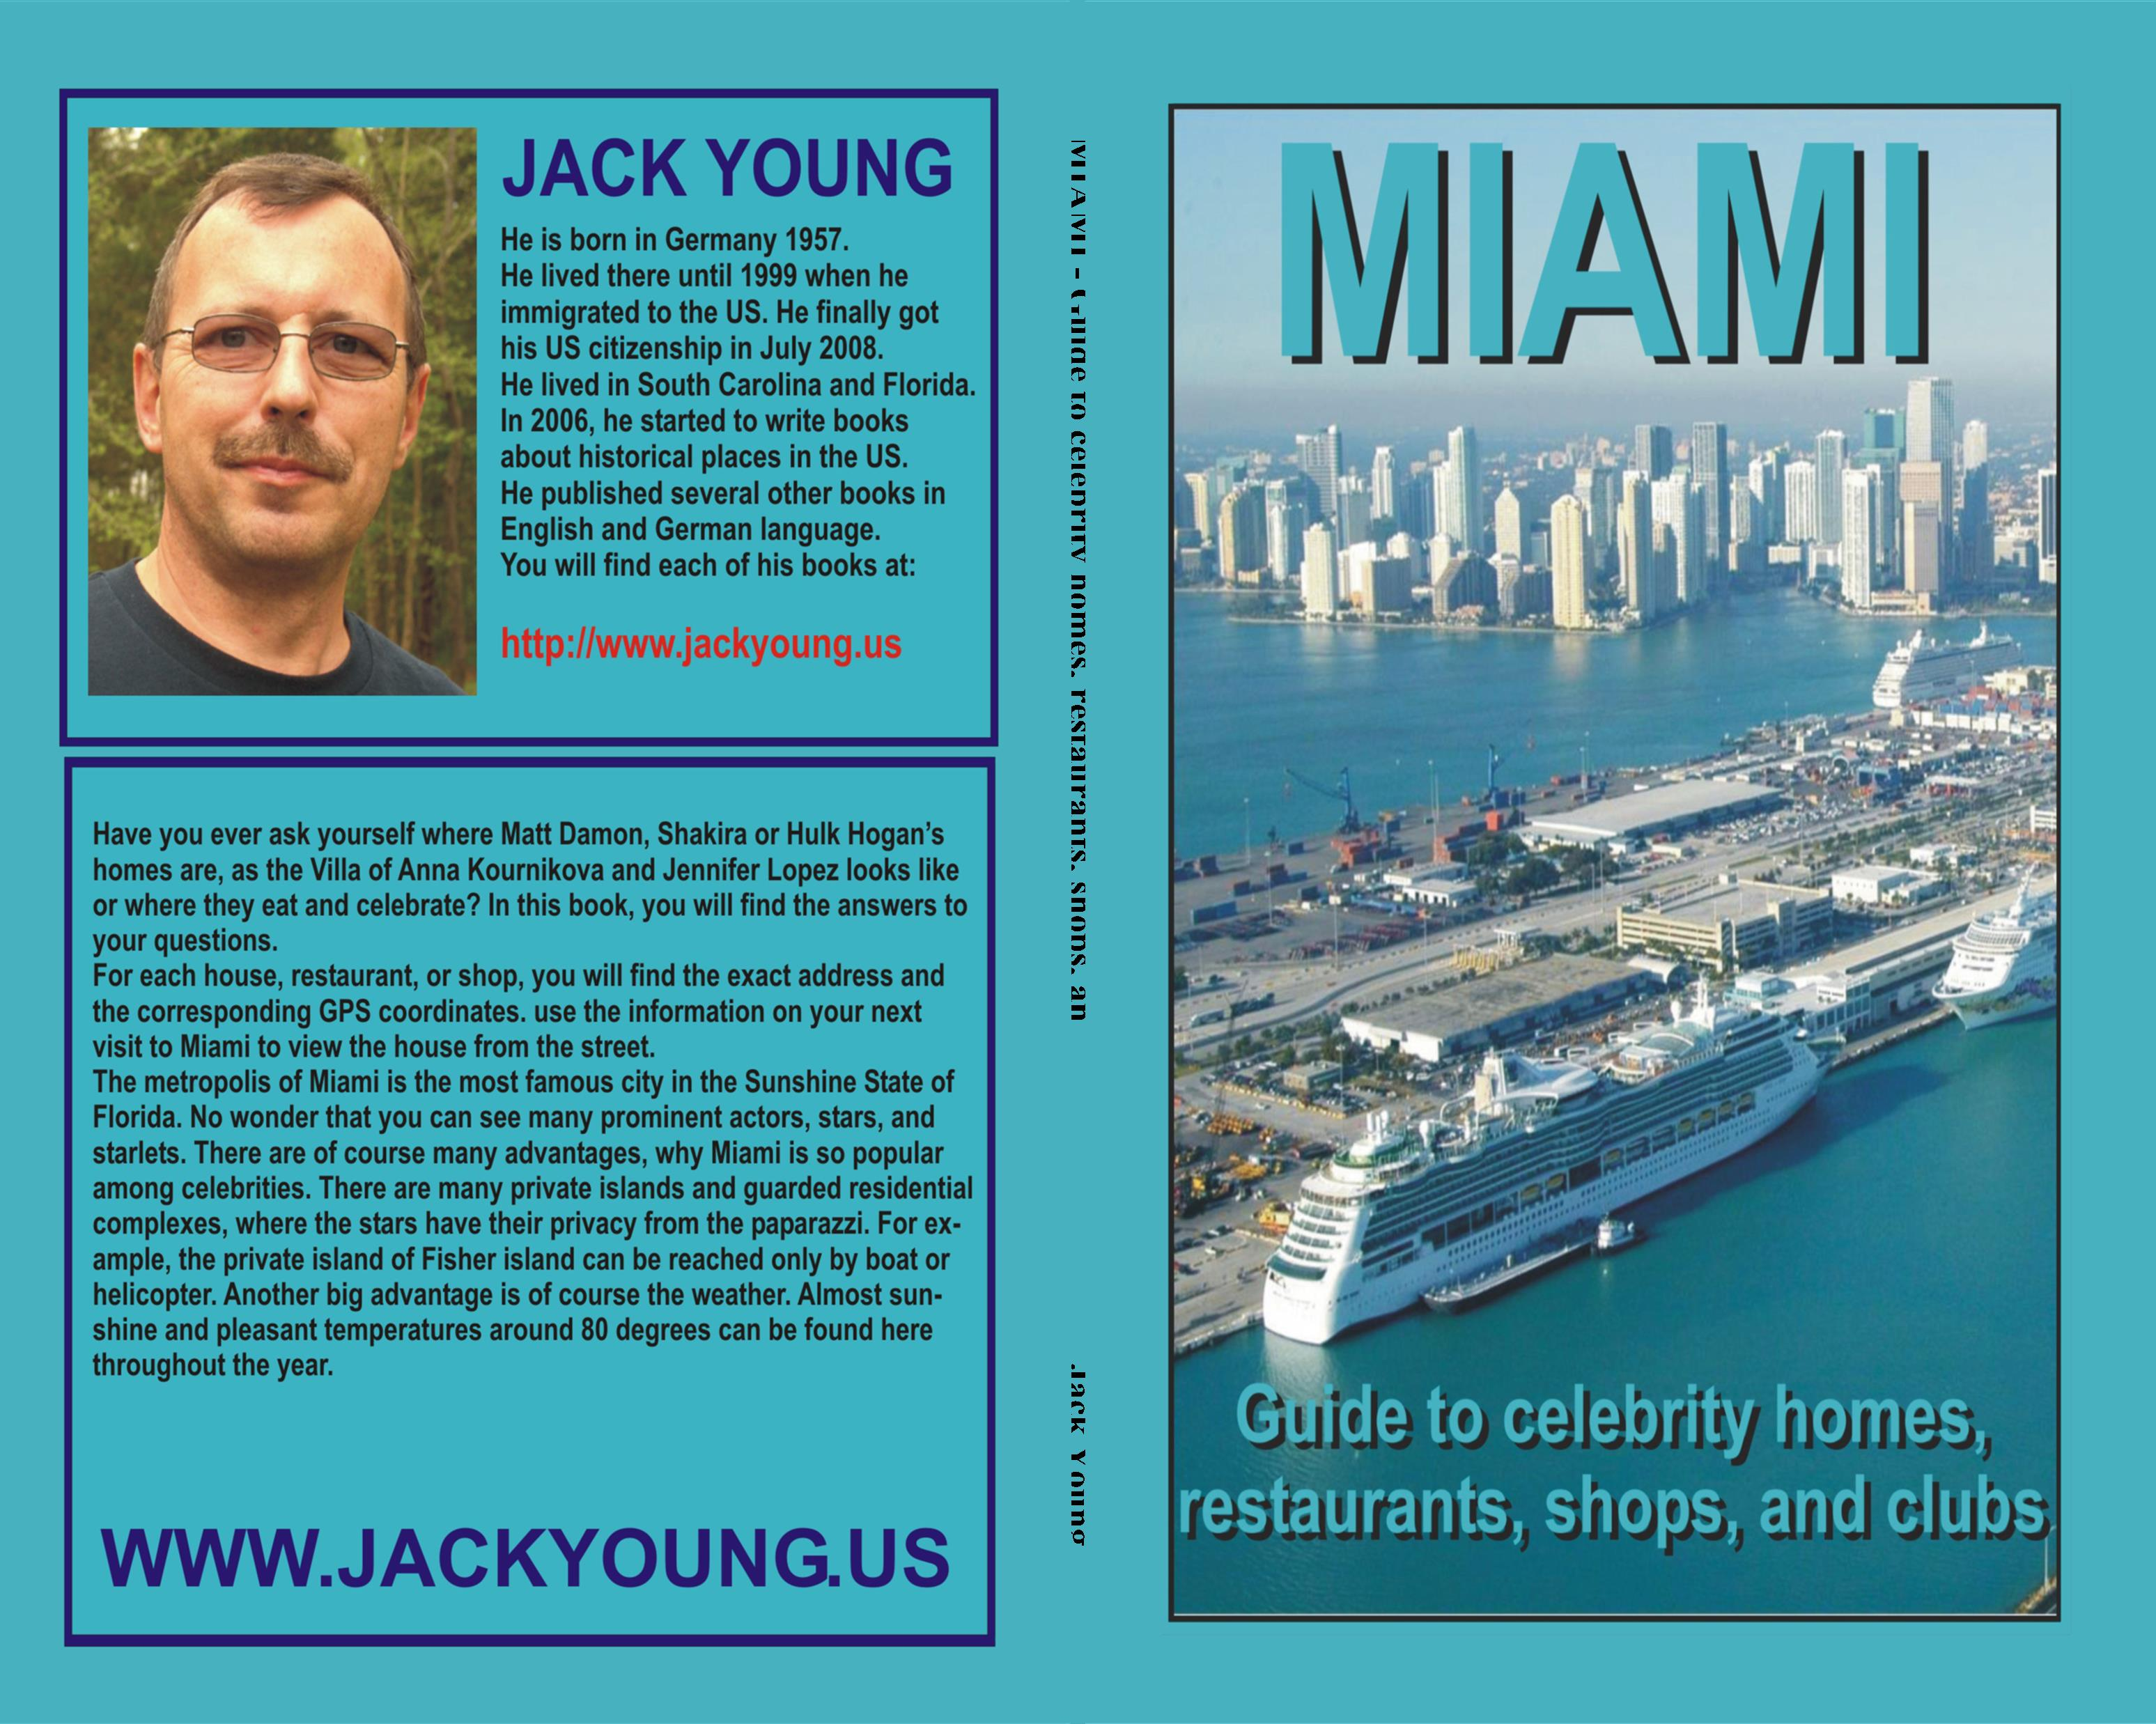 MIAMI - Guide to celebrity homes, restaurants, shops, and clubs cover image